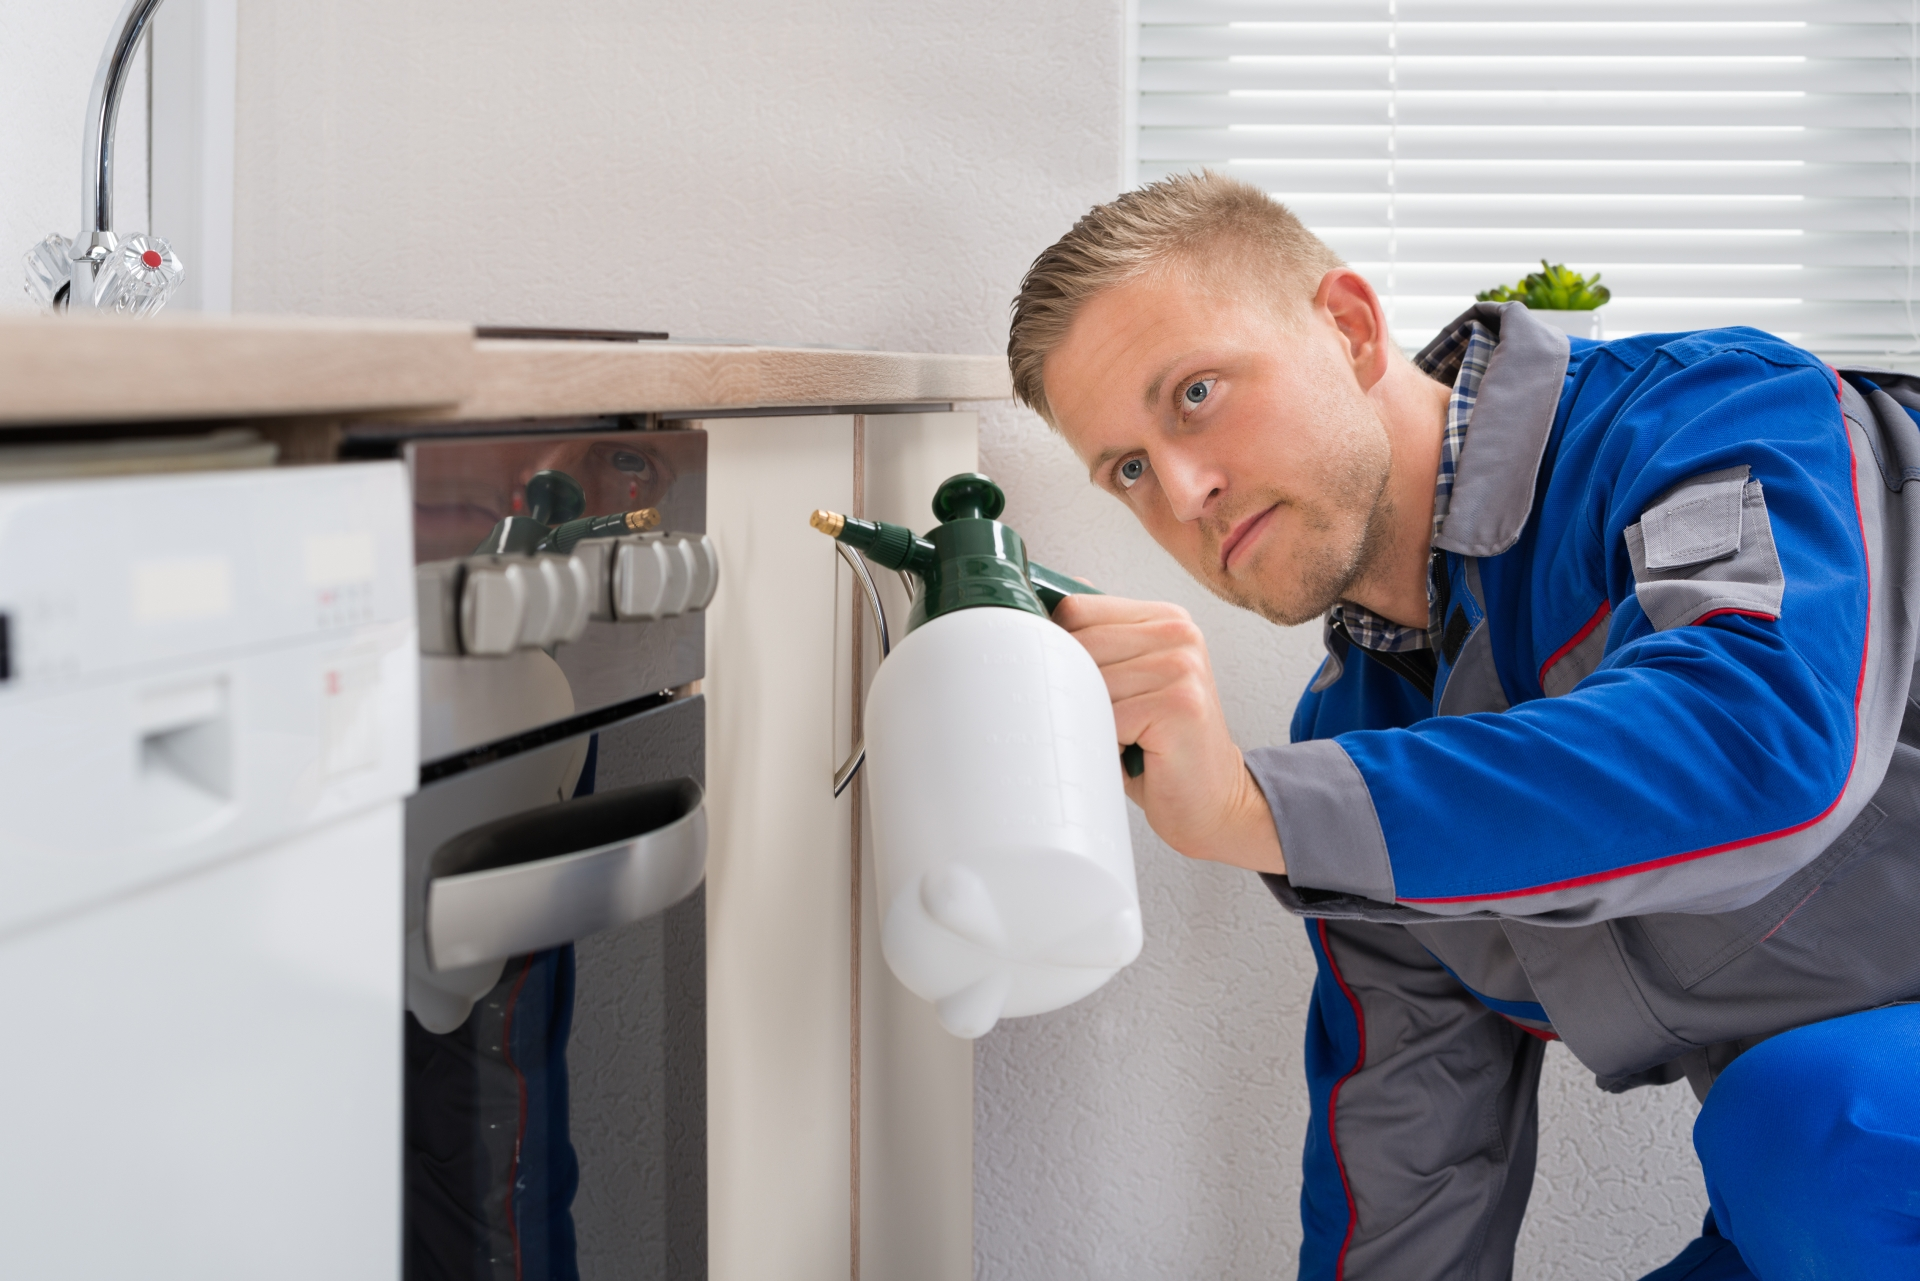 Pest Inspection, Pest Control in Chiswick, W4. Call Now 020 8166 9746